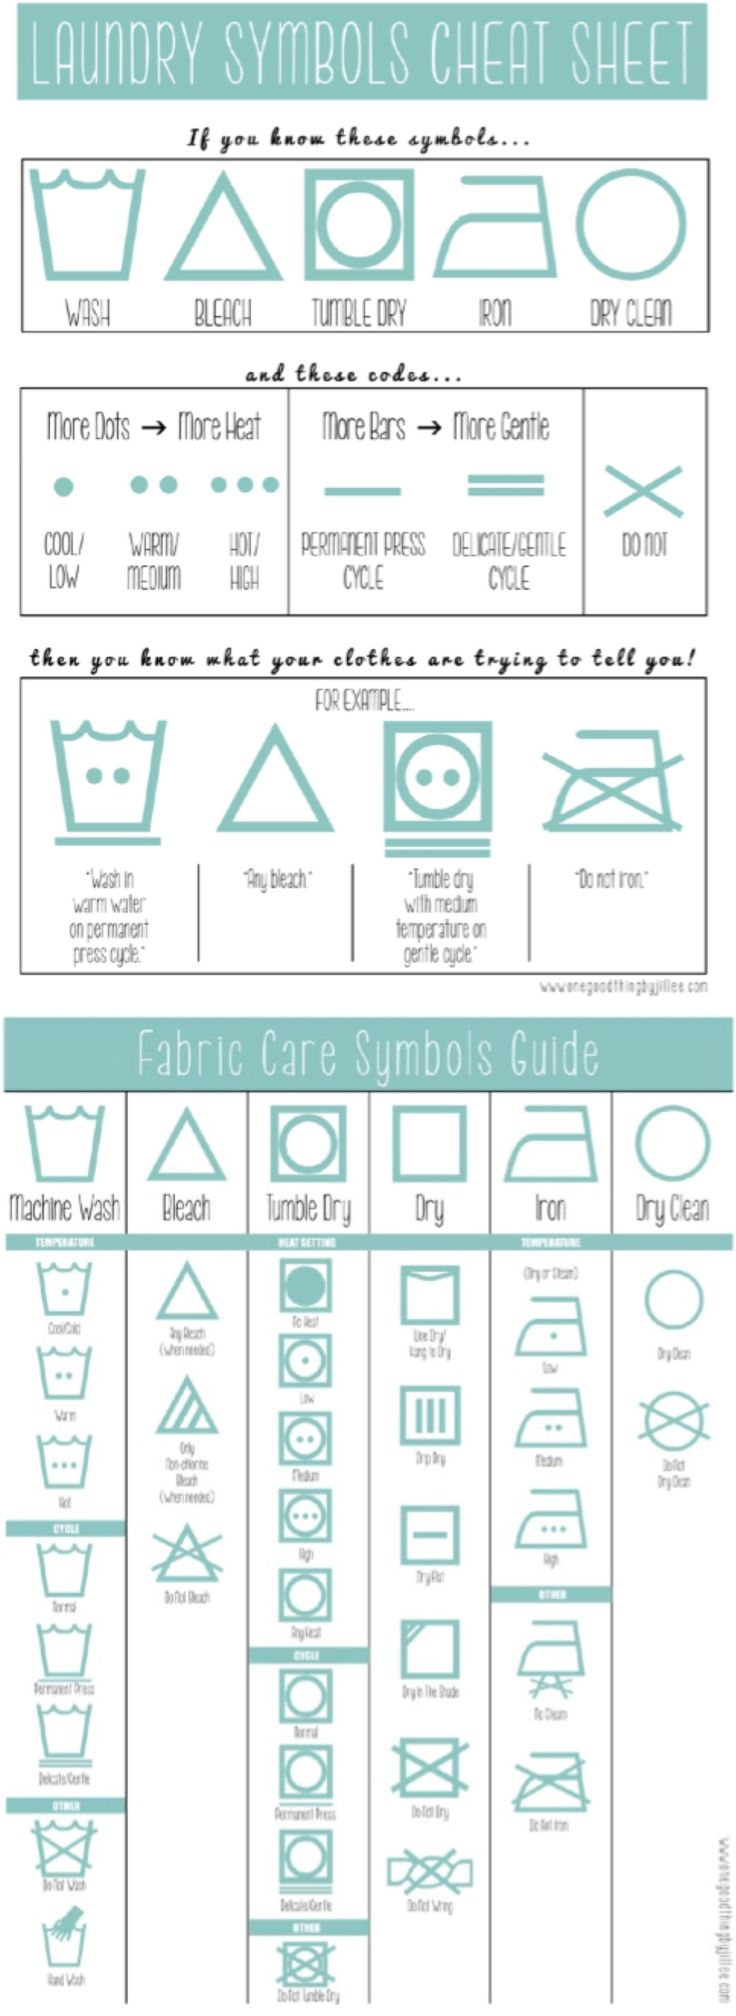 'Laundry Symbols Made Simple...!' (via One Good Thing by Jillee)